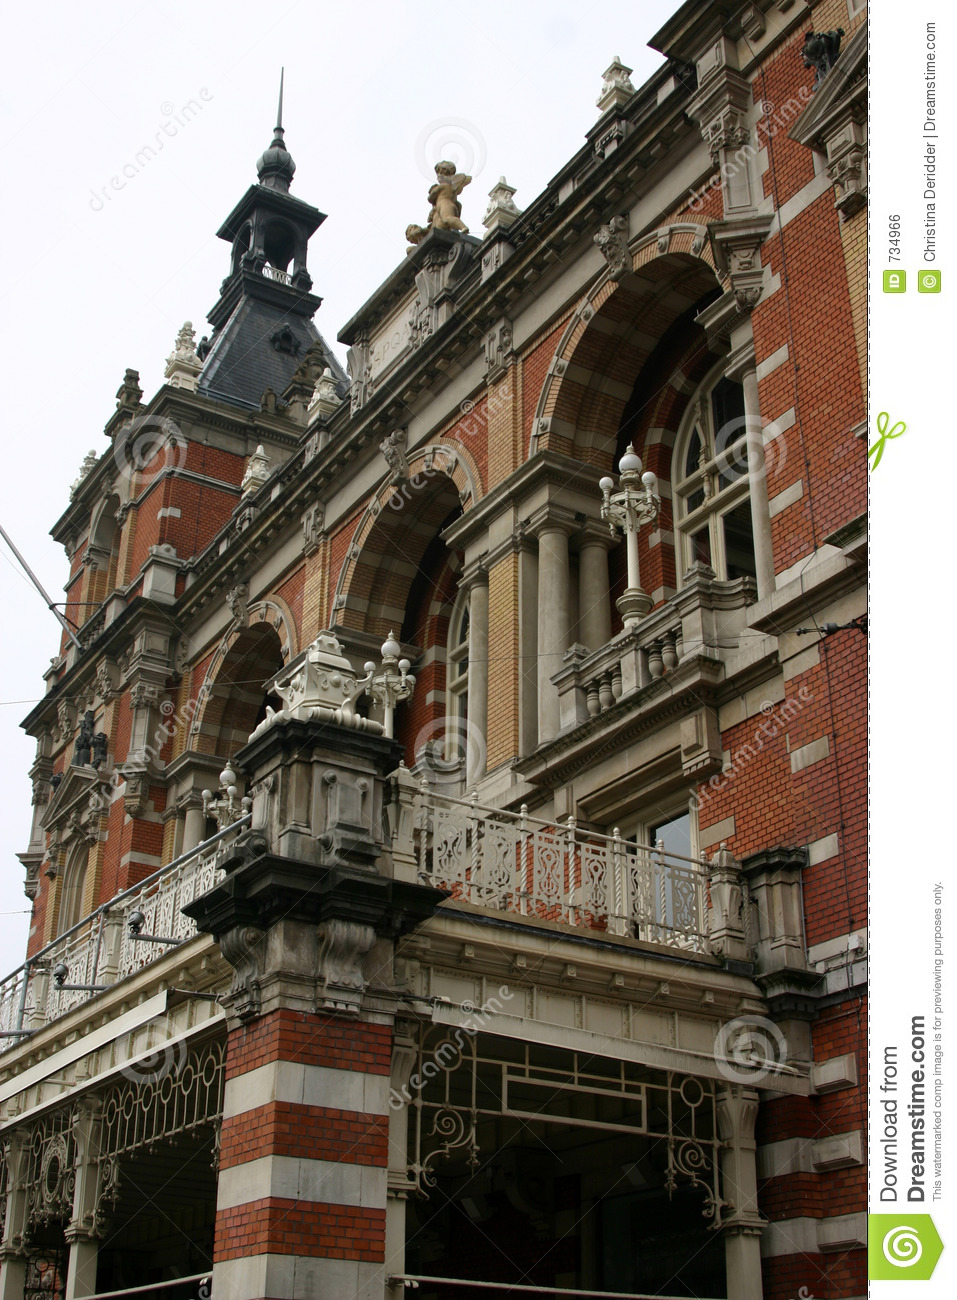 Architecture hollandaise